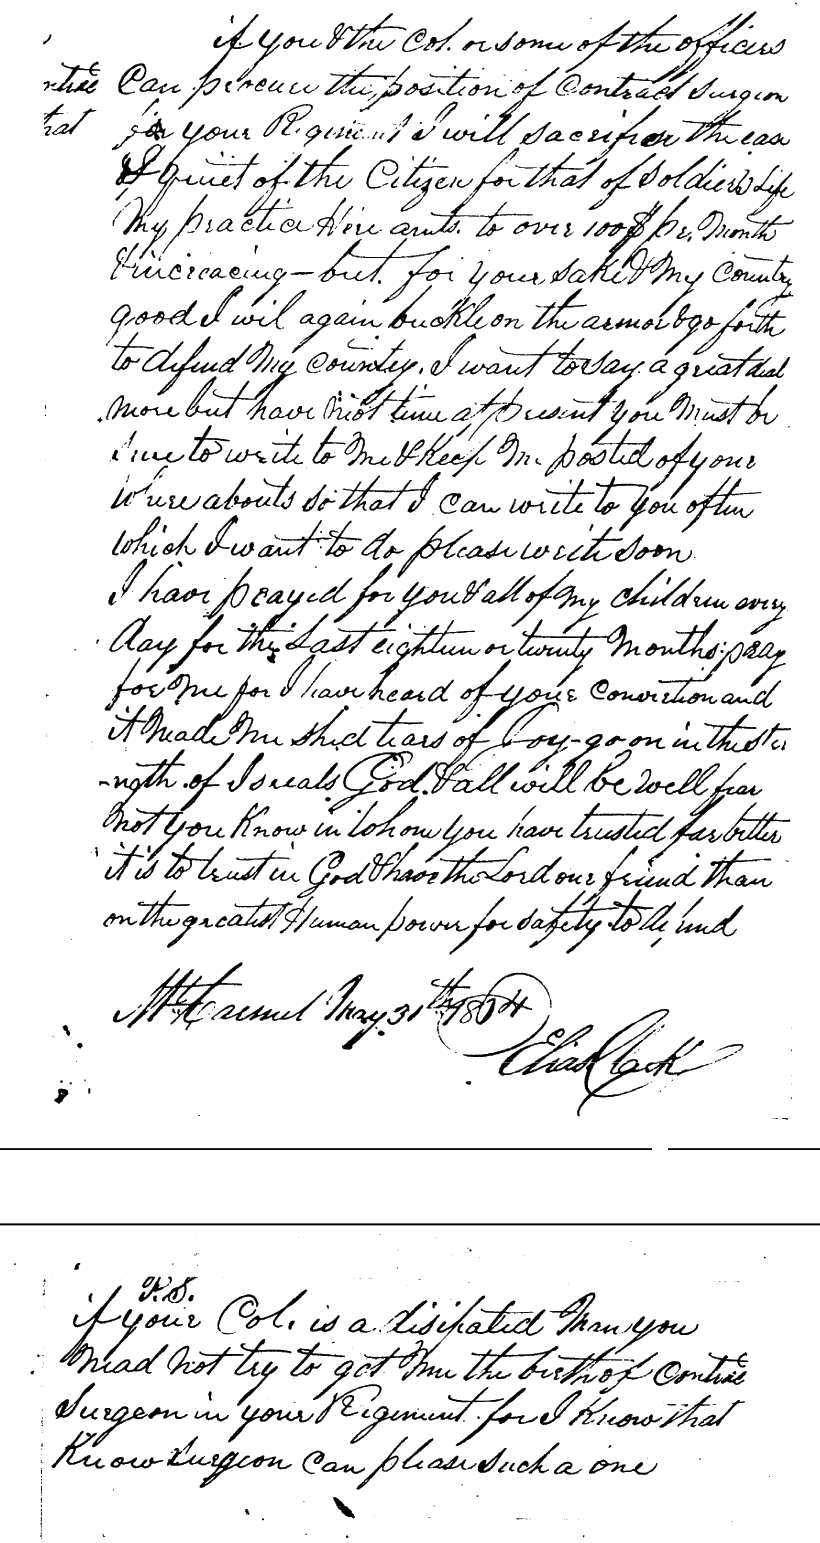 Dr. Clark Letter to his son Elias Clark Page 2 & 3